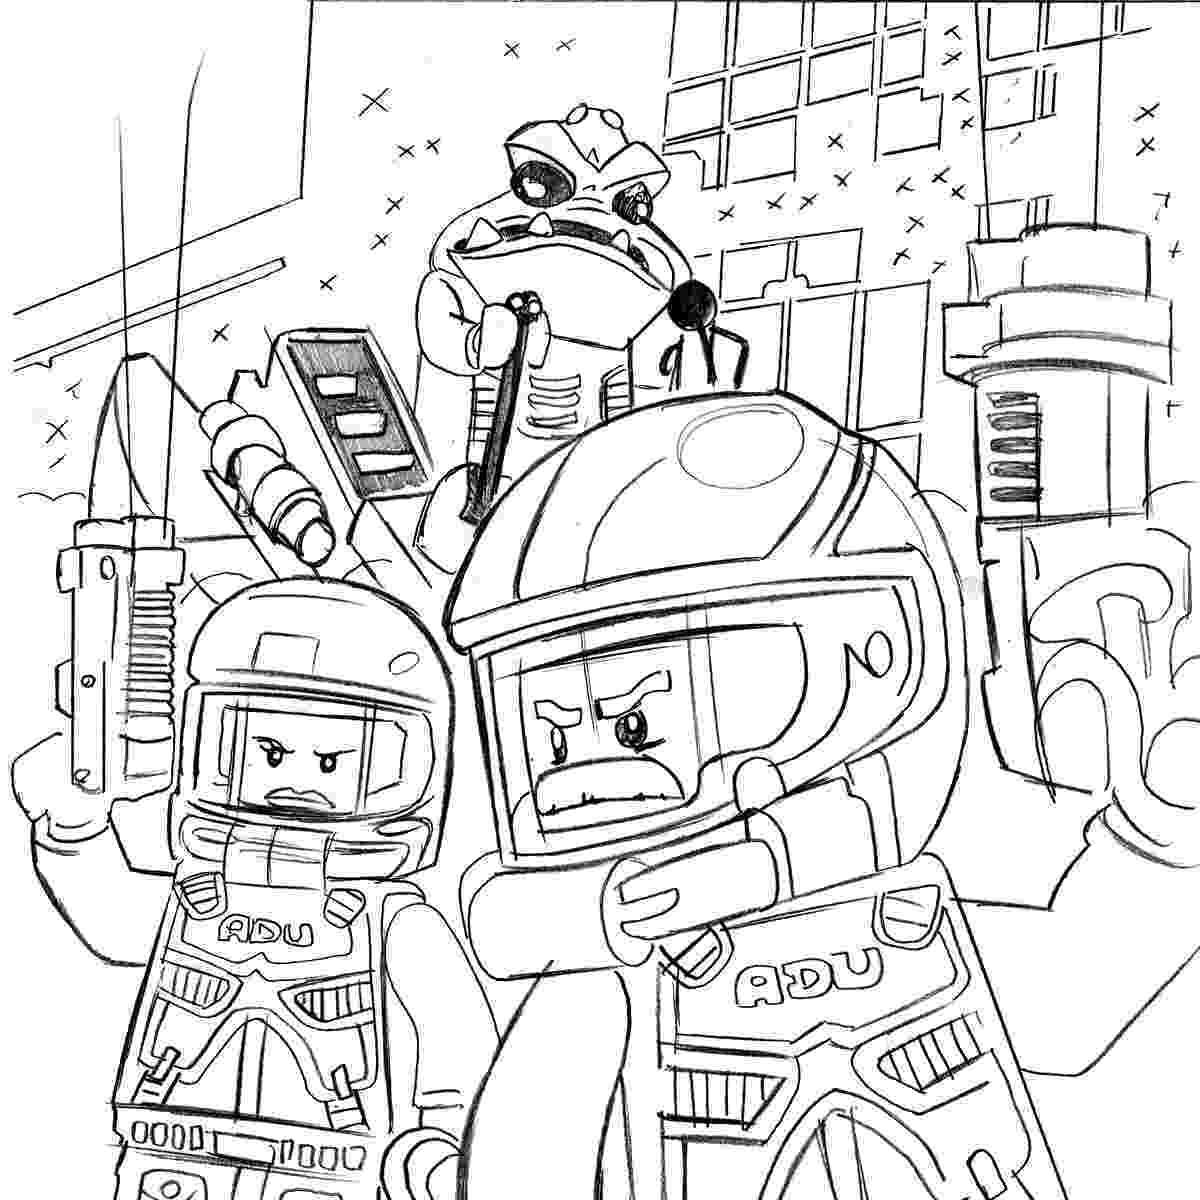 lego city coloring page lego police coloring pages printable class crafts city lego page coloring